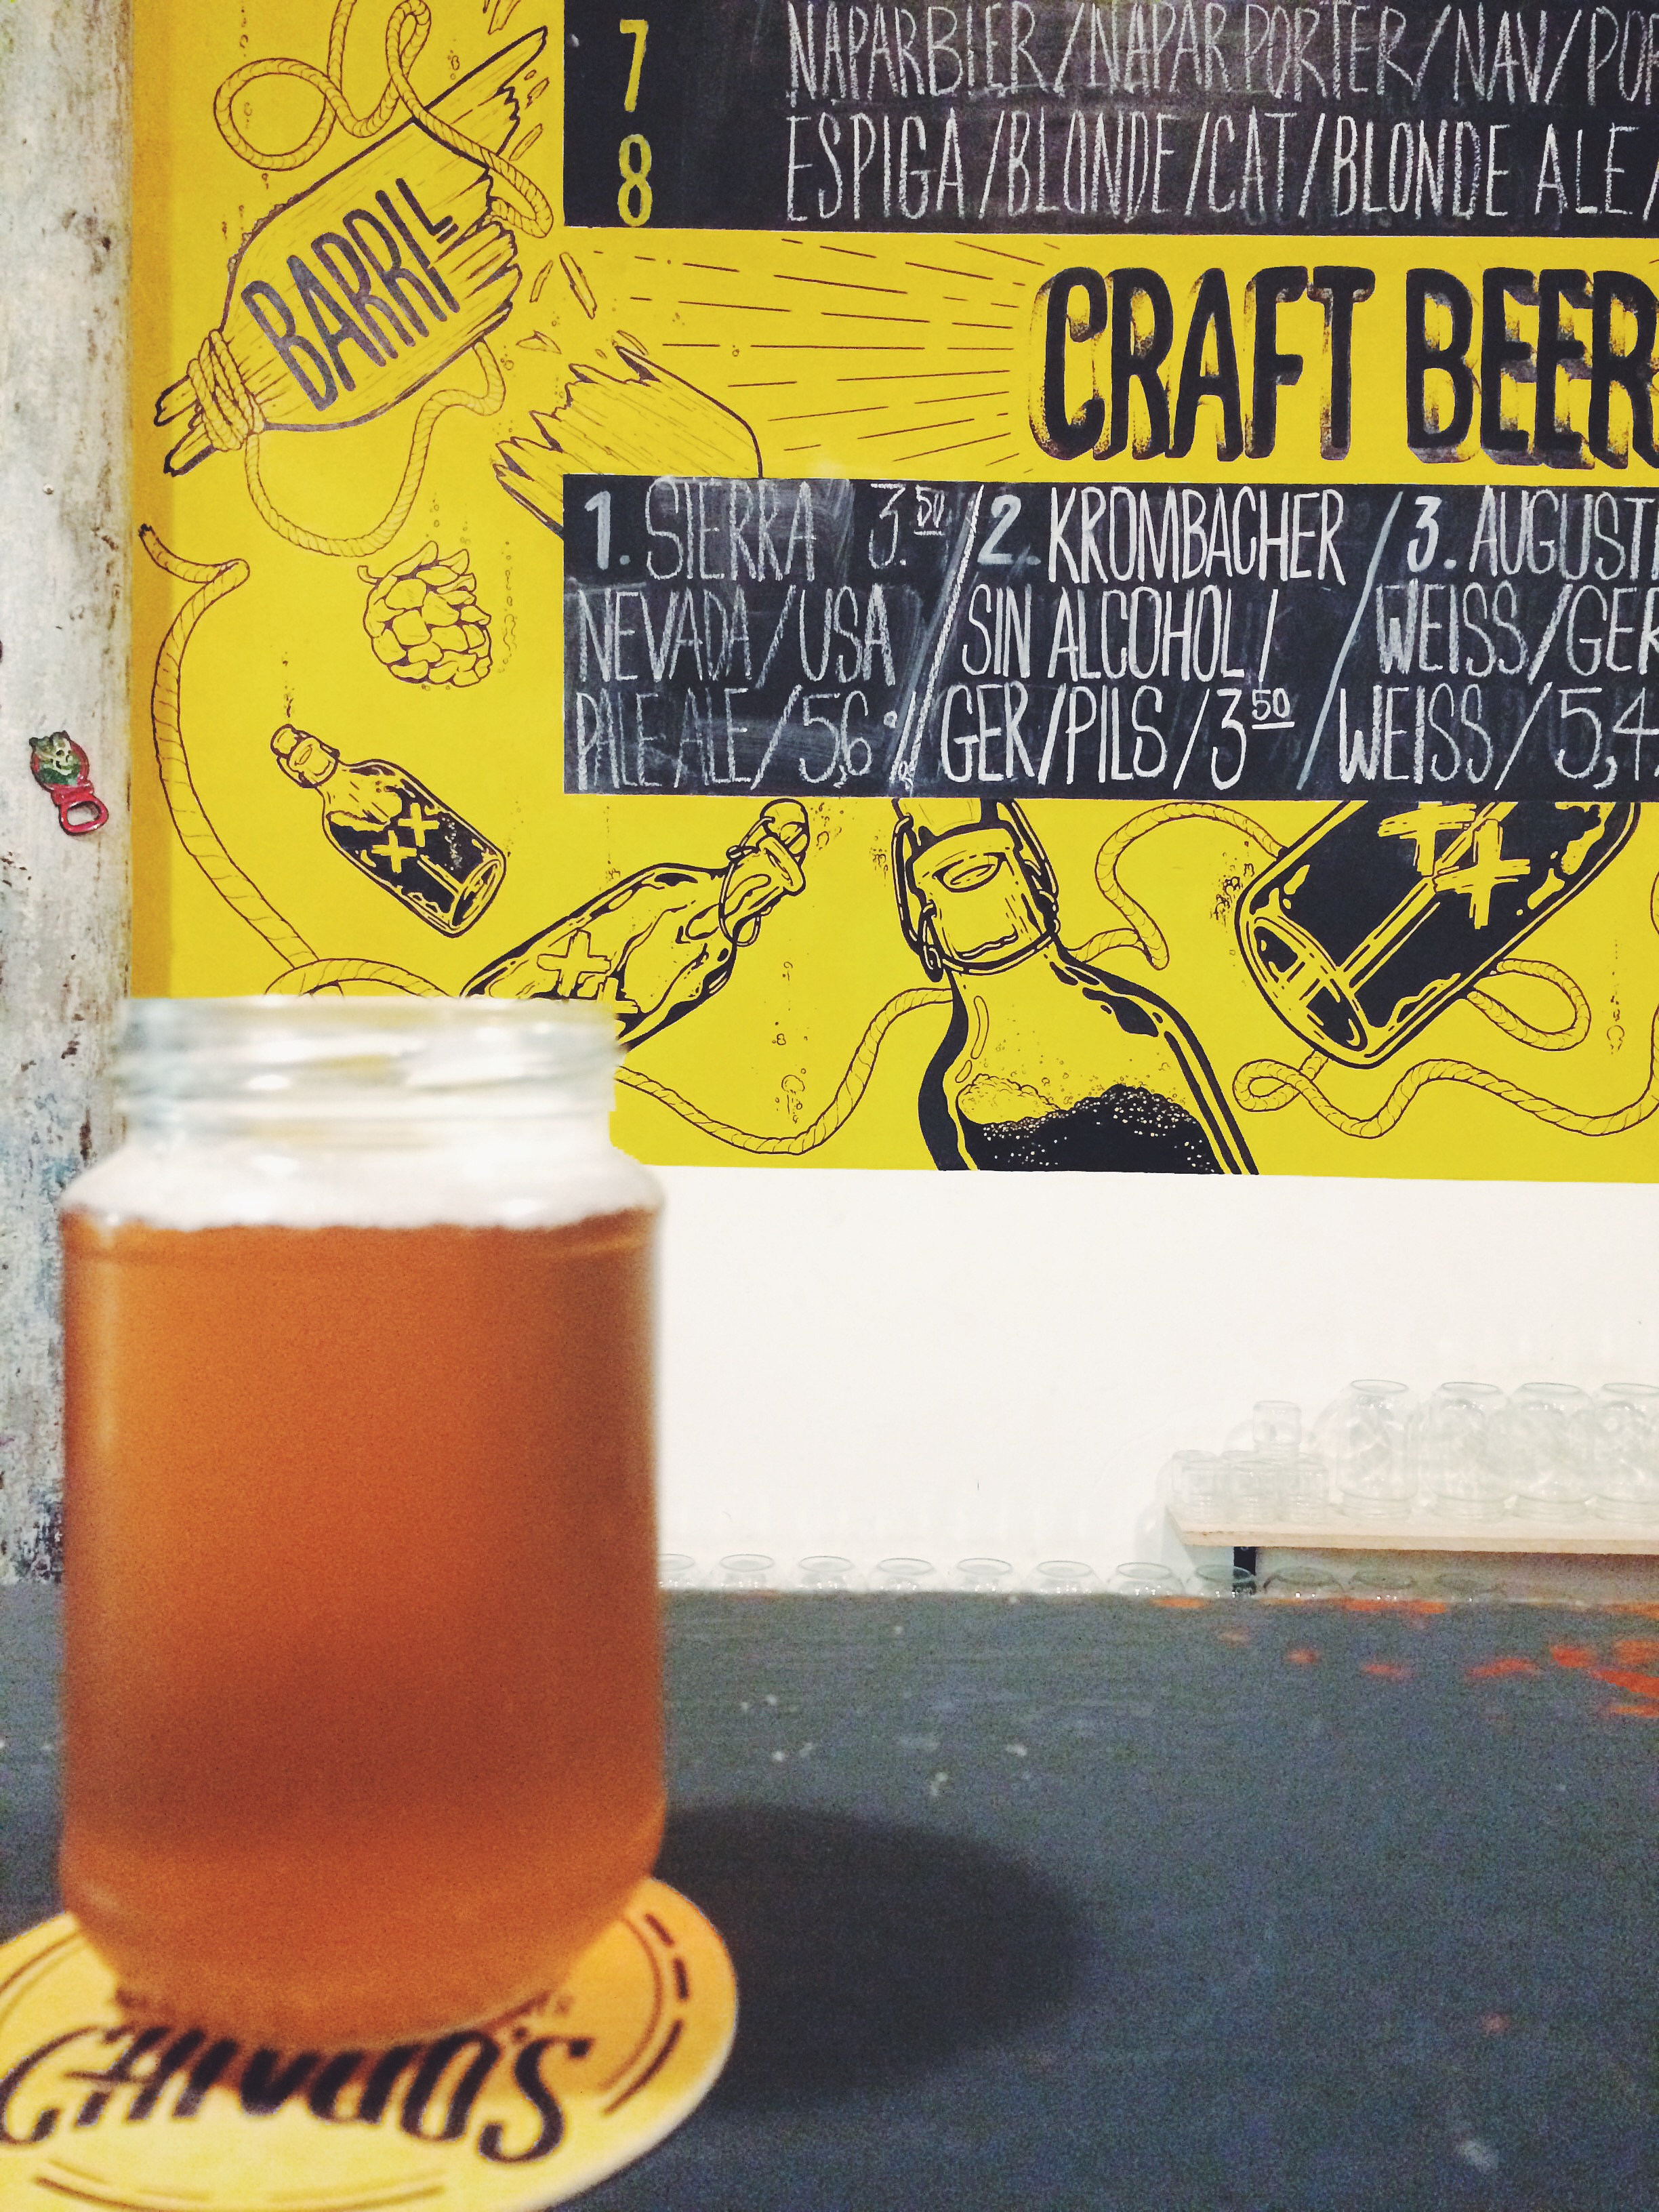 Craft beers at Chivuos, Barcelona